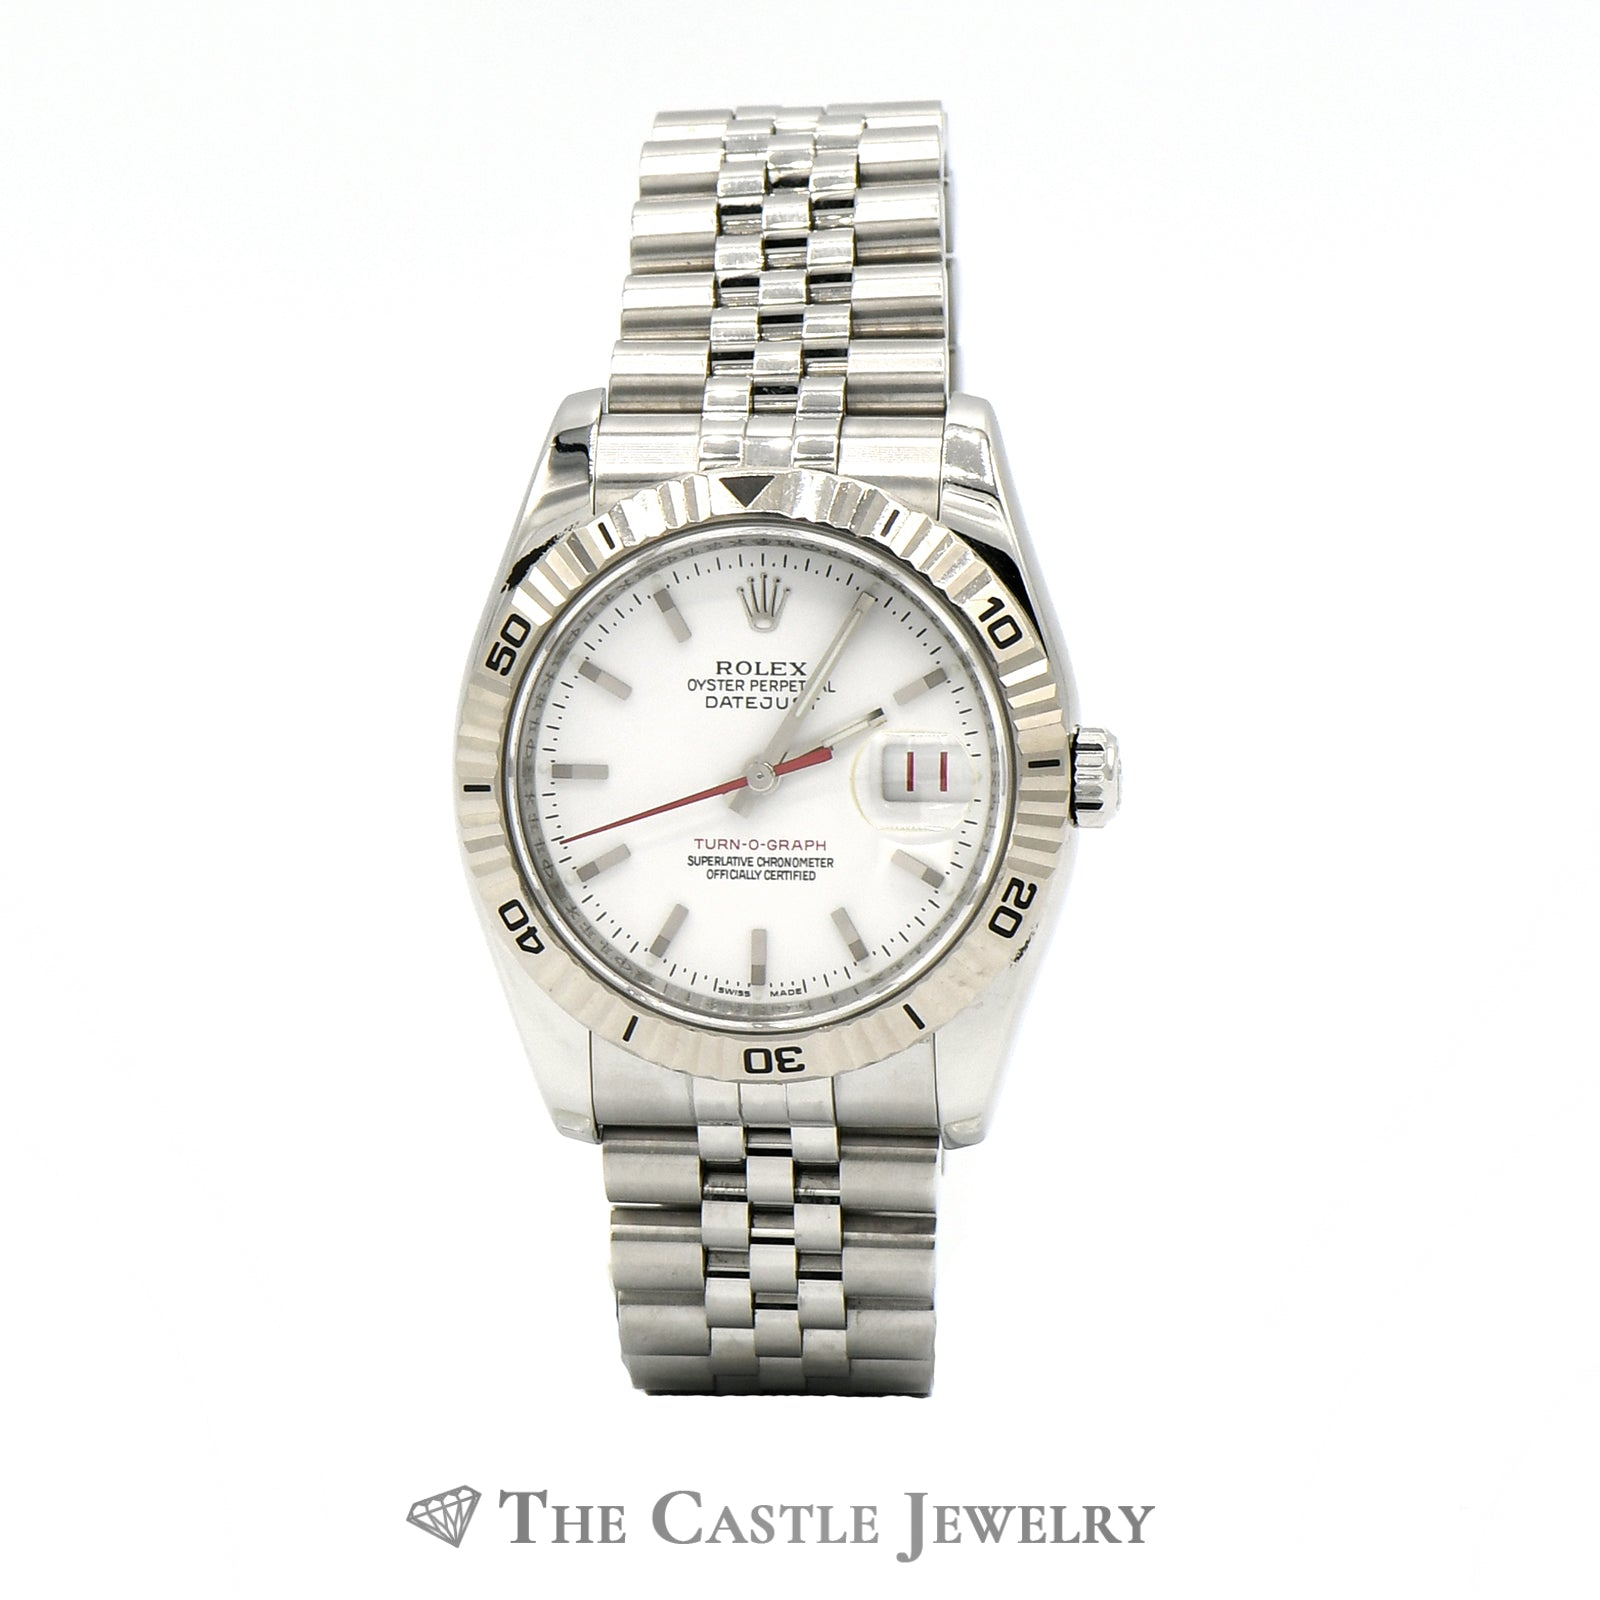 Rolex 36mm 18k Turn-O-Graph Bezel Datejust 11624 with White Dial & Jubilee Band